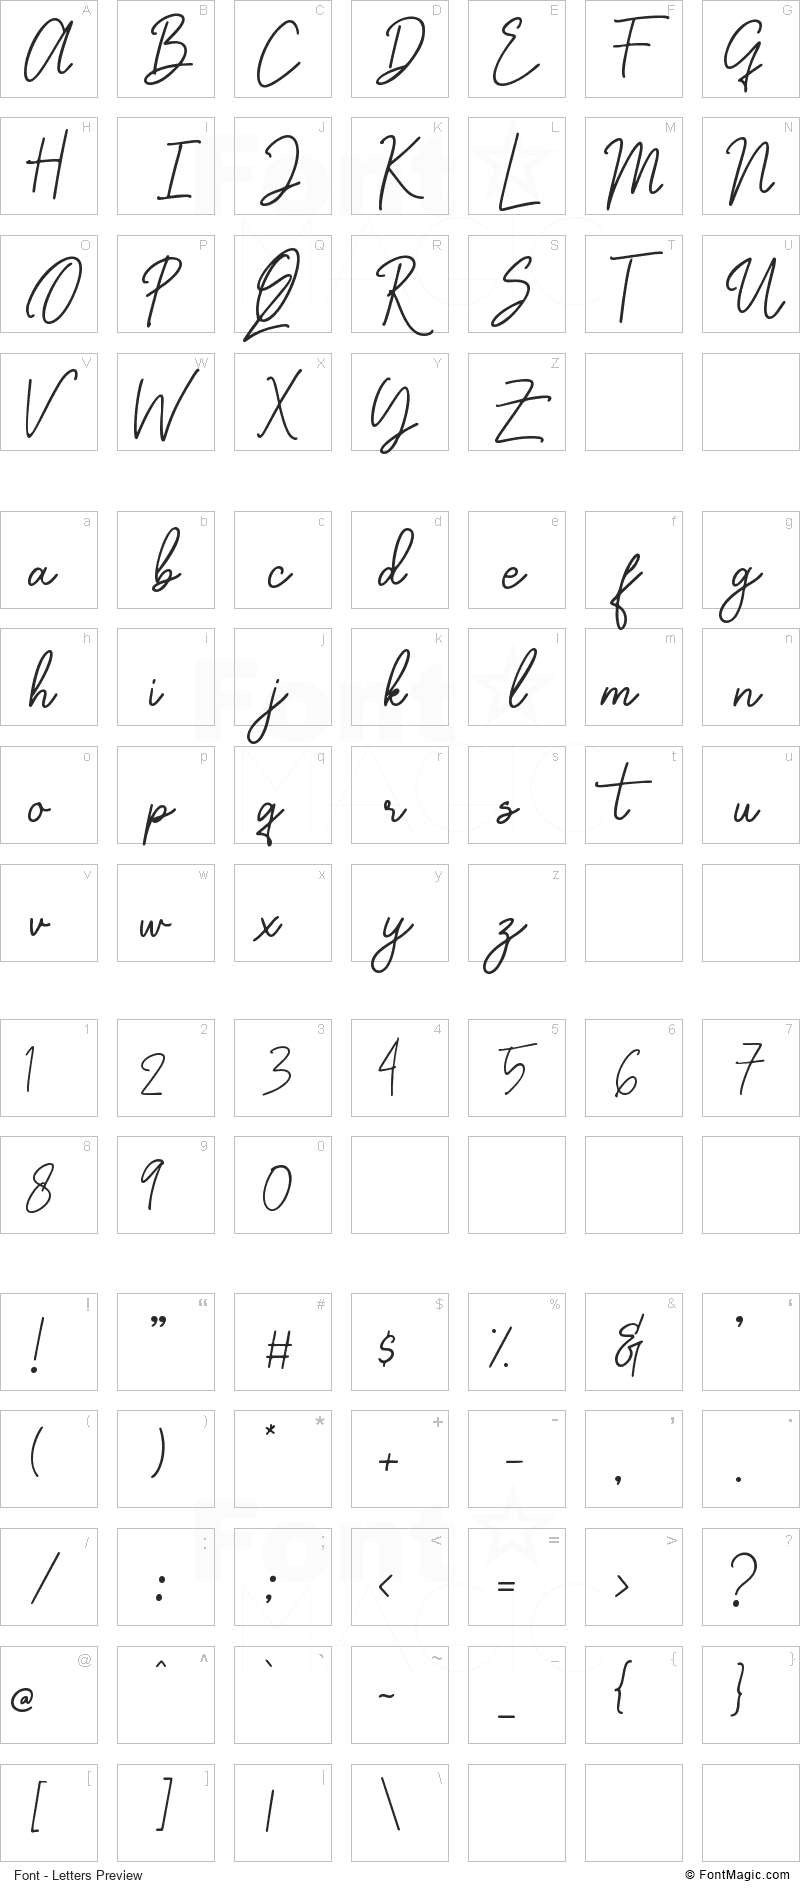 Graciast Font - All Latters Preview Chart